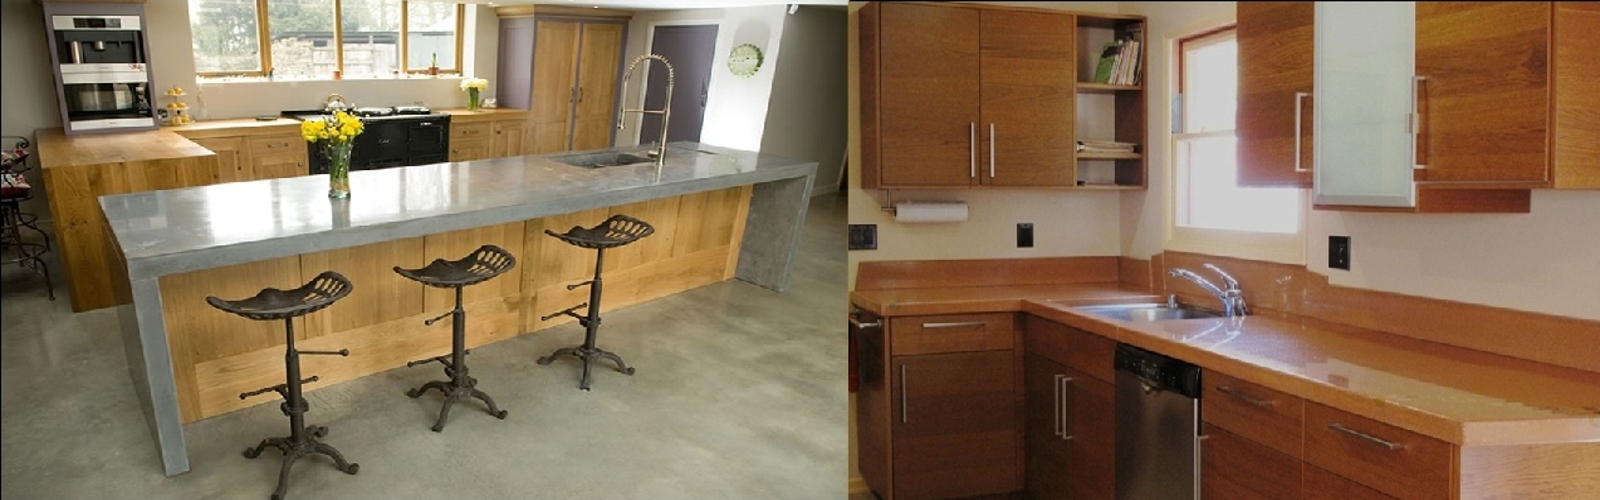 Kitchen Countertops Windsor Ontario